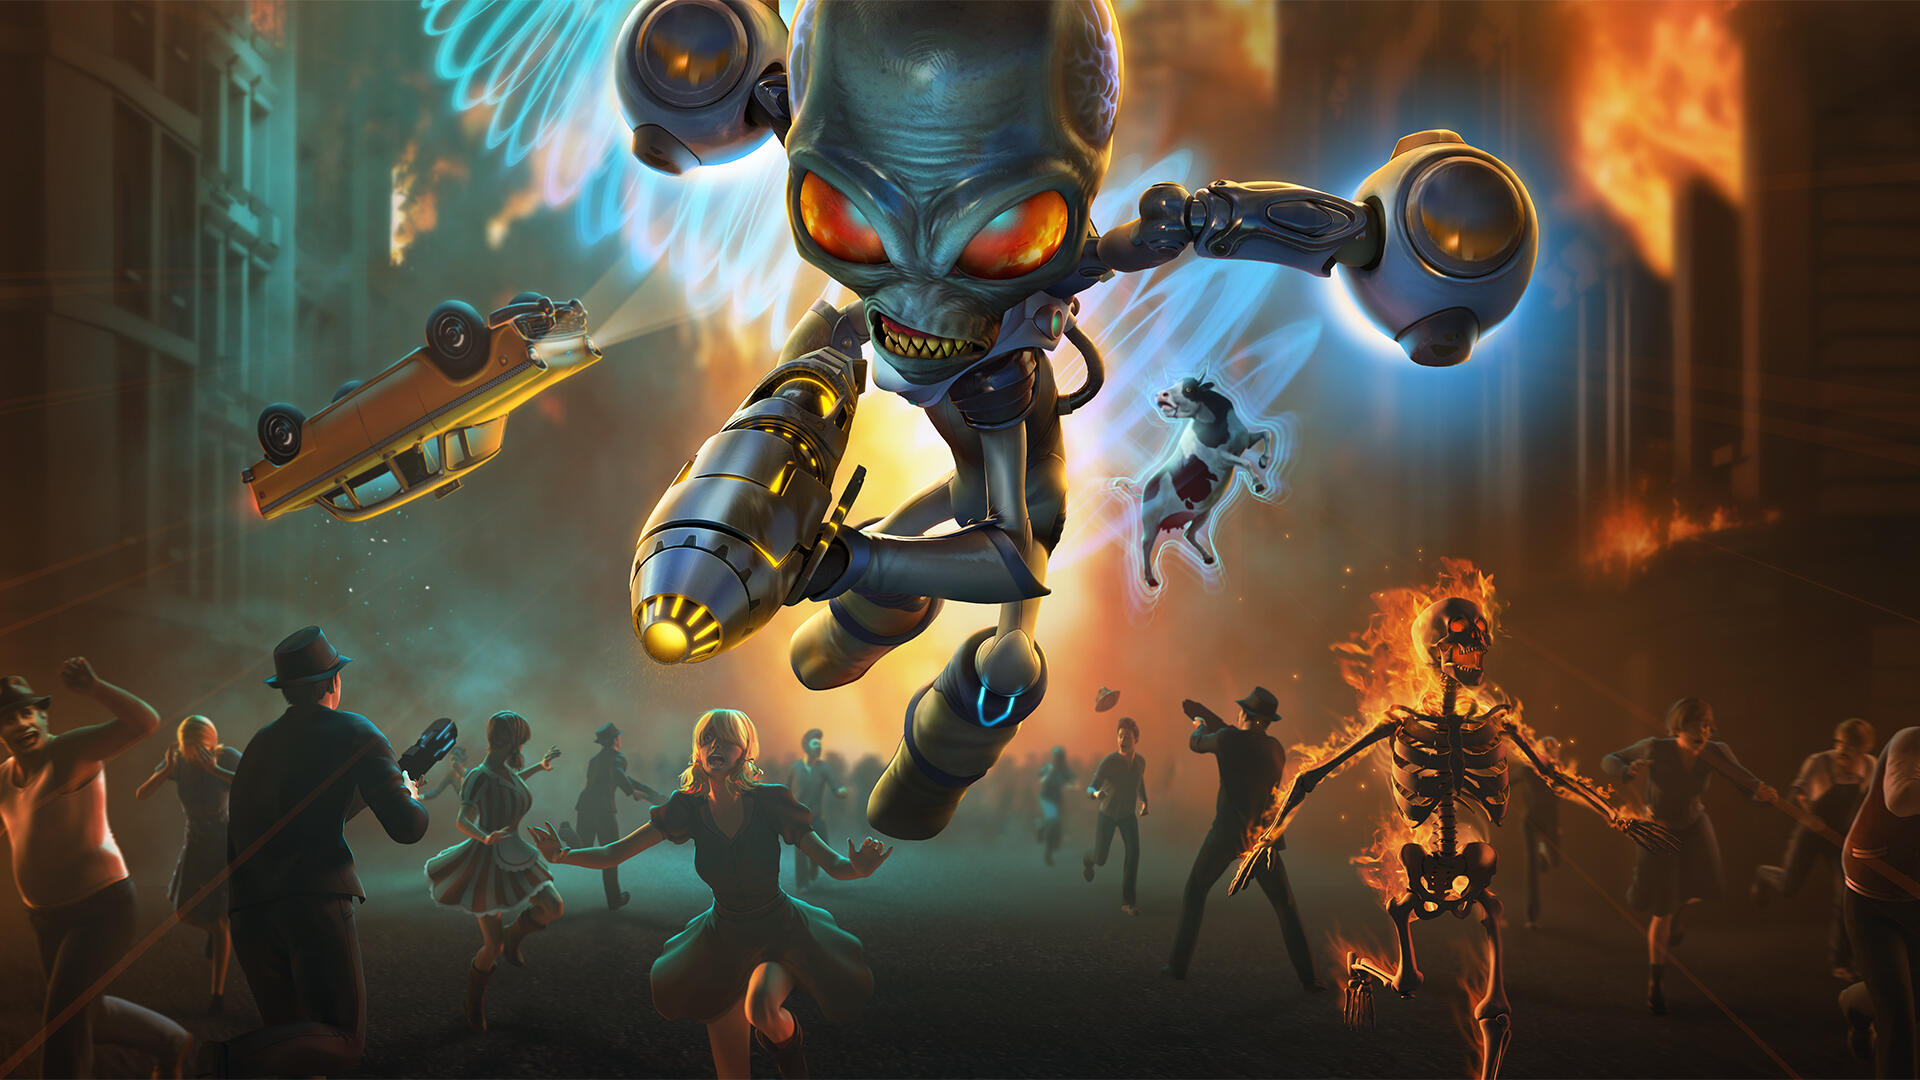 Playing The Strange Destroy All Humans Remake Left Us With One Question: Why?